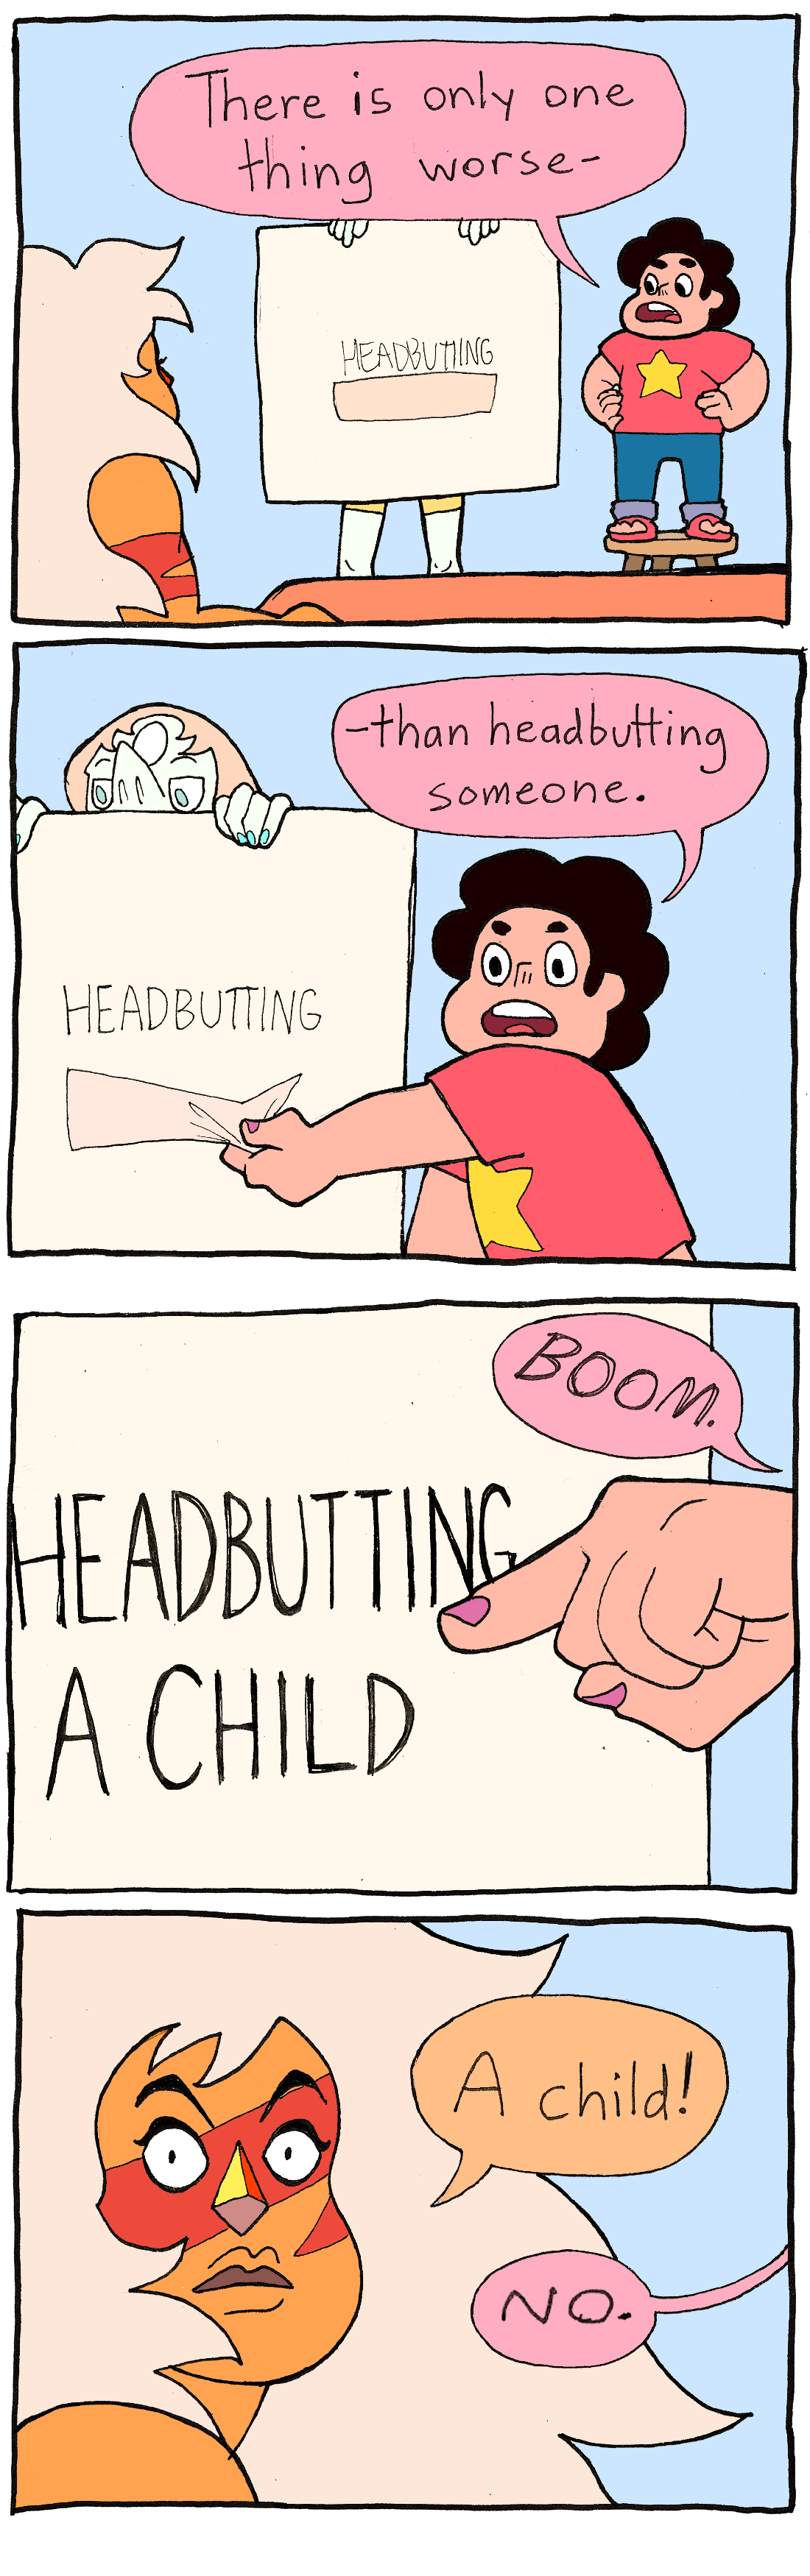 Worse than Headbutting | Steven Universe | Know Your Meme